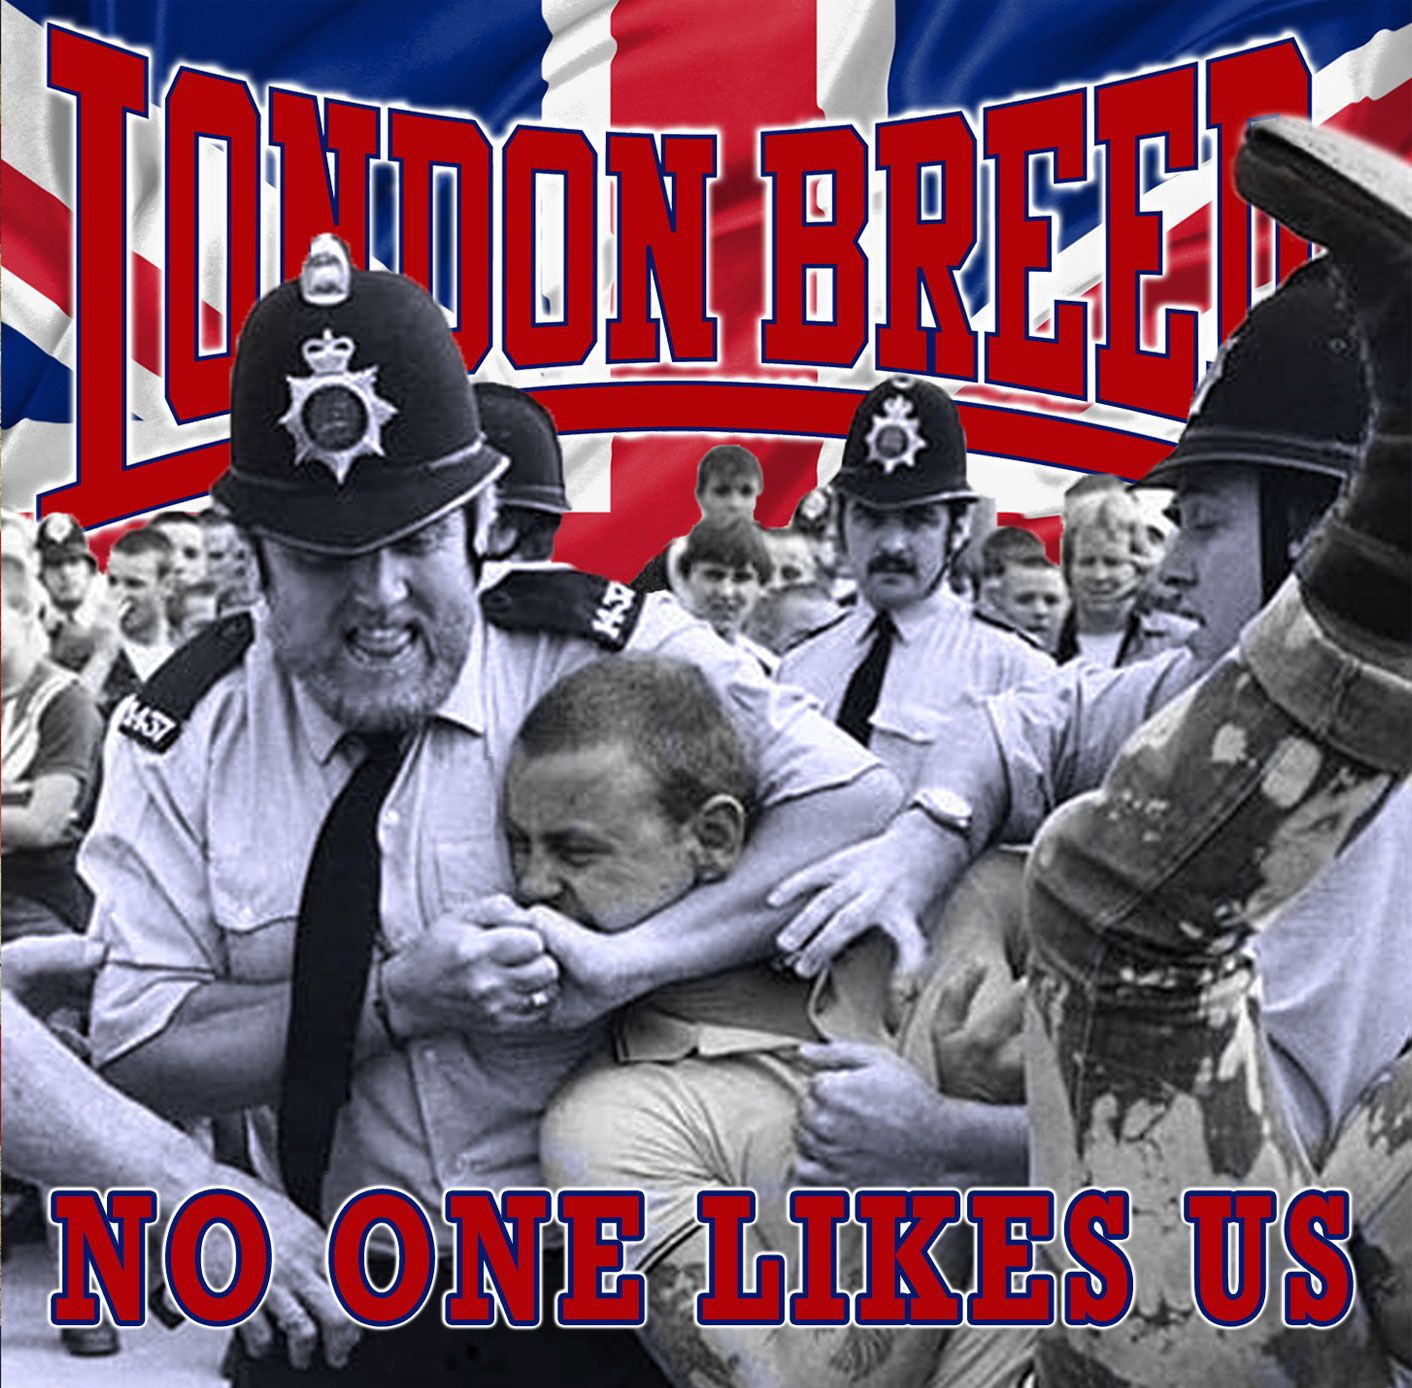 London Breed ‎– No One Likes Us